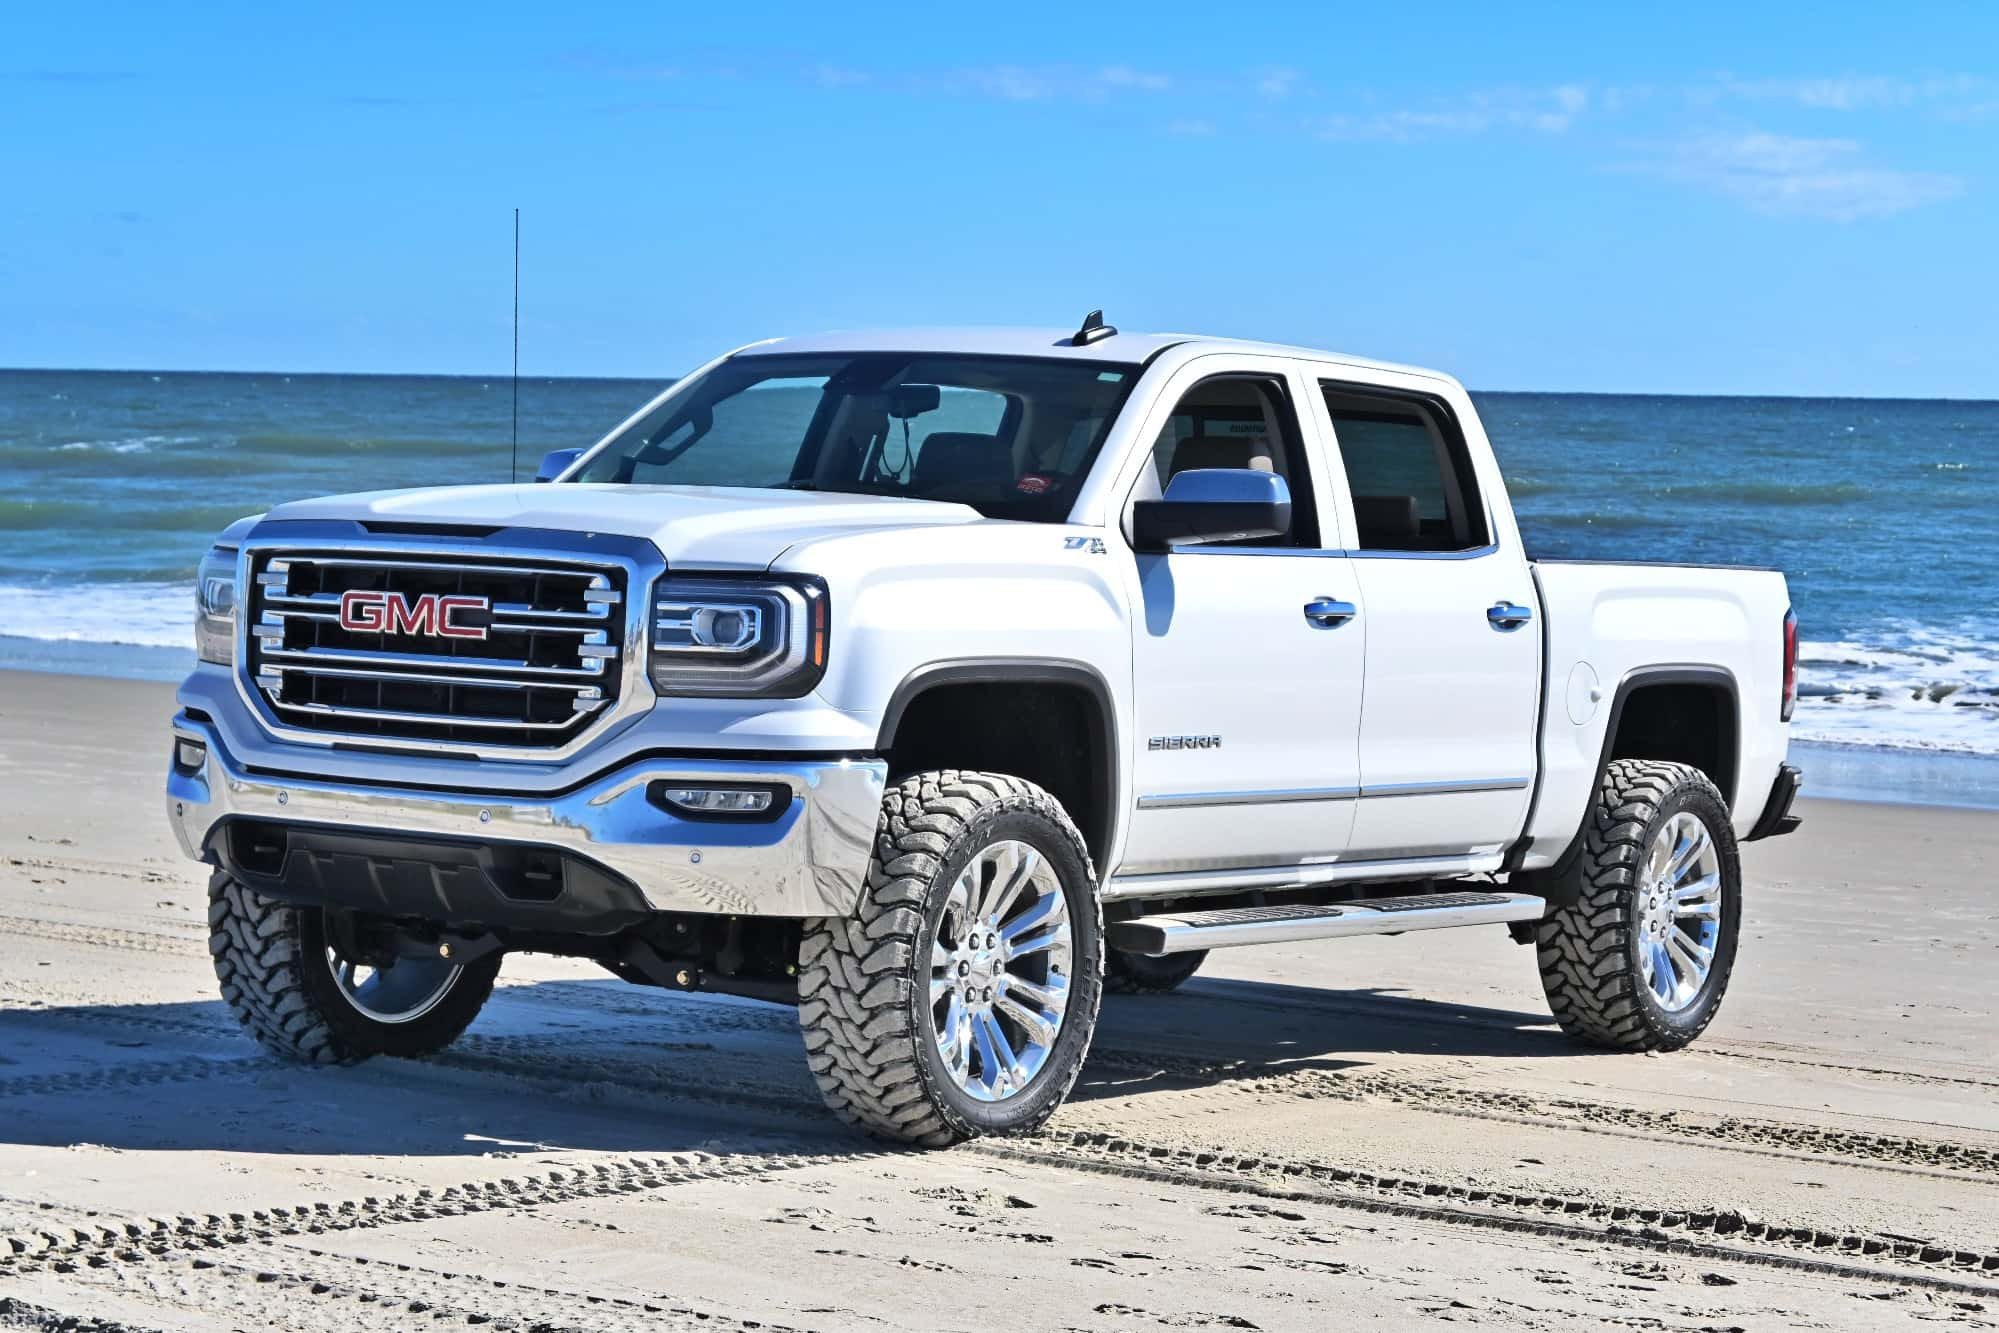 A silver 2018 GMC Sierra 1500 running the Factory Reproductions Fr55 22x9 +24 wrapped in Toyo Tires Open Country M/t 35